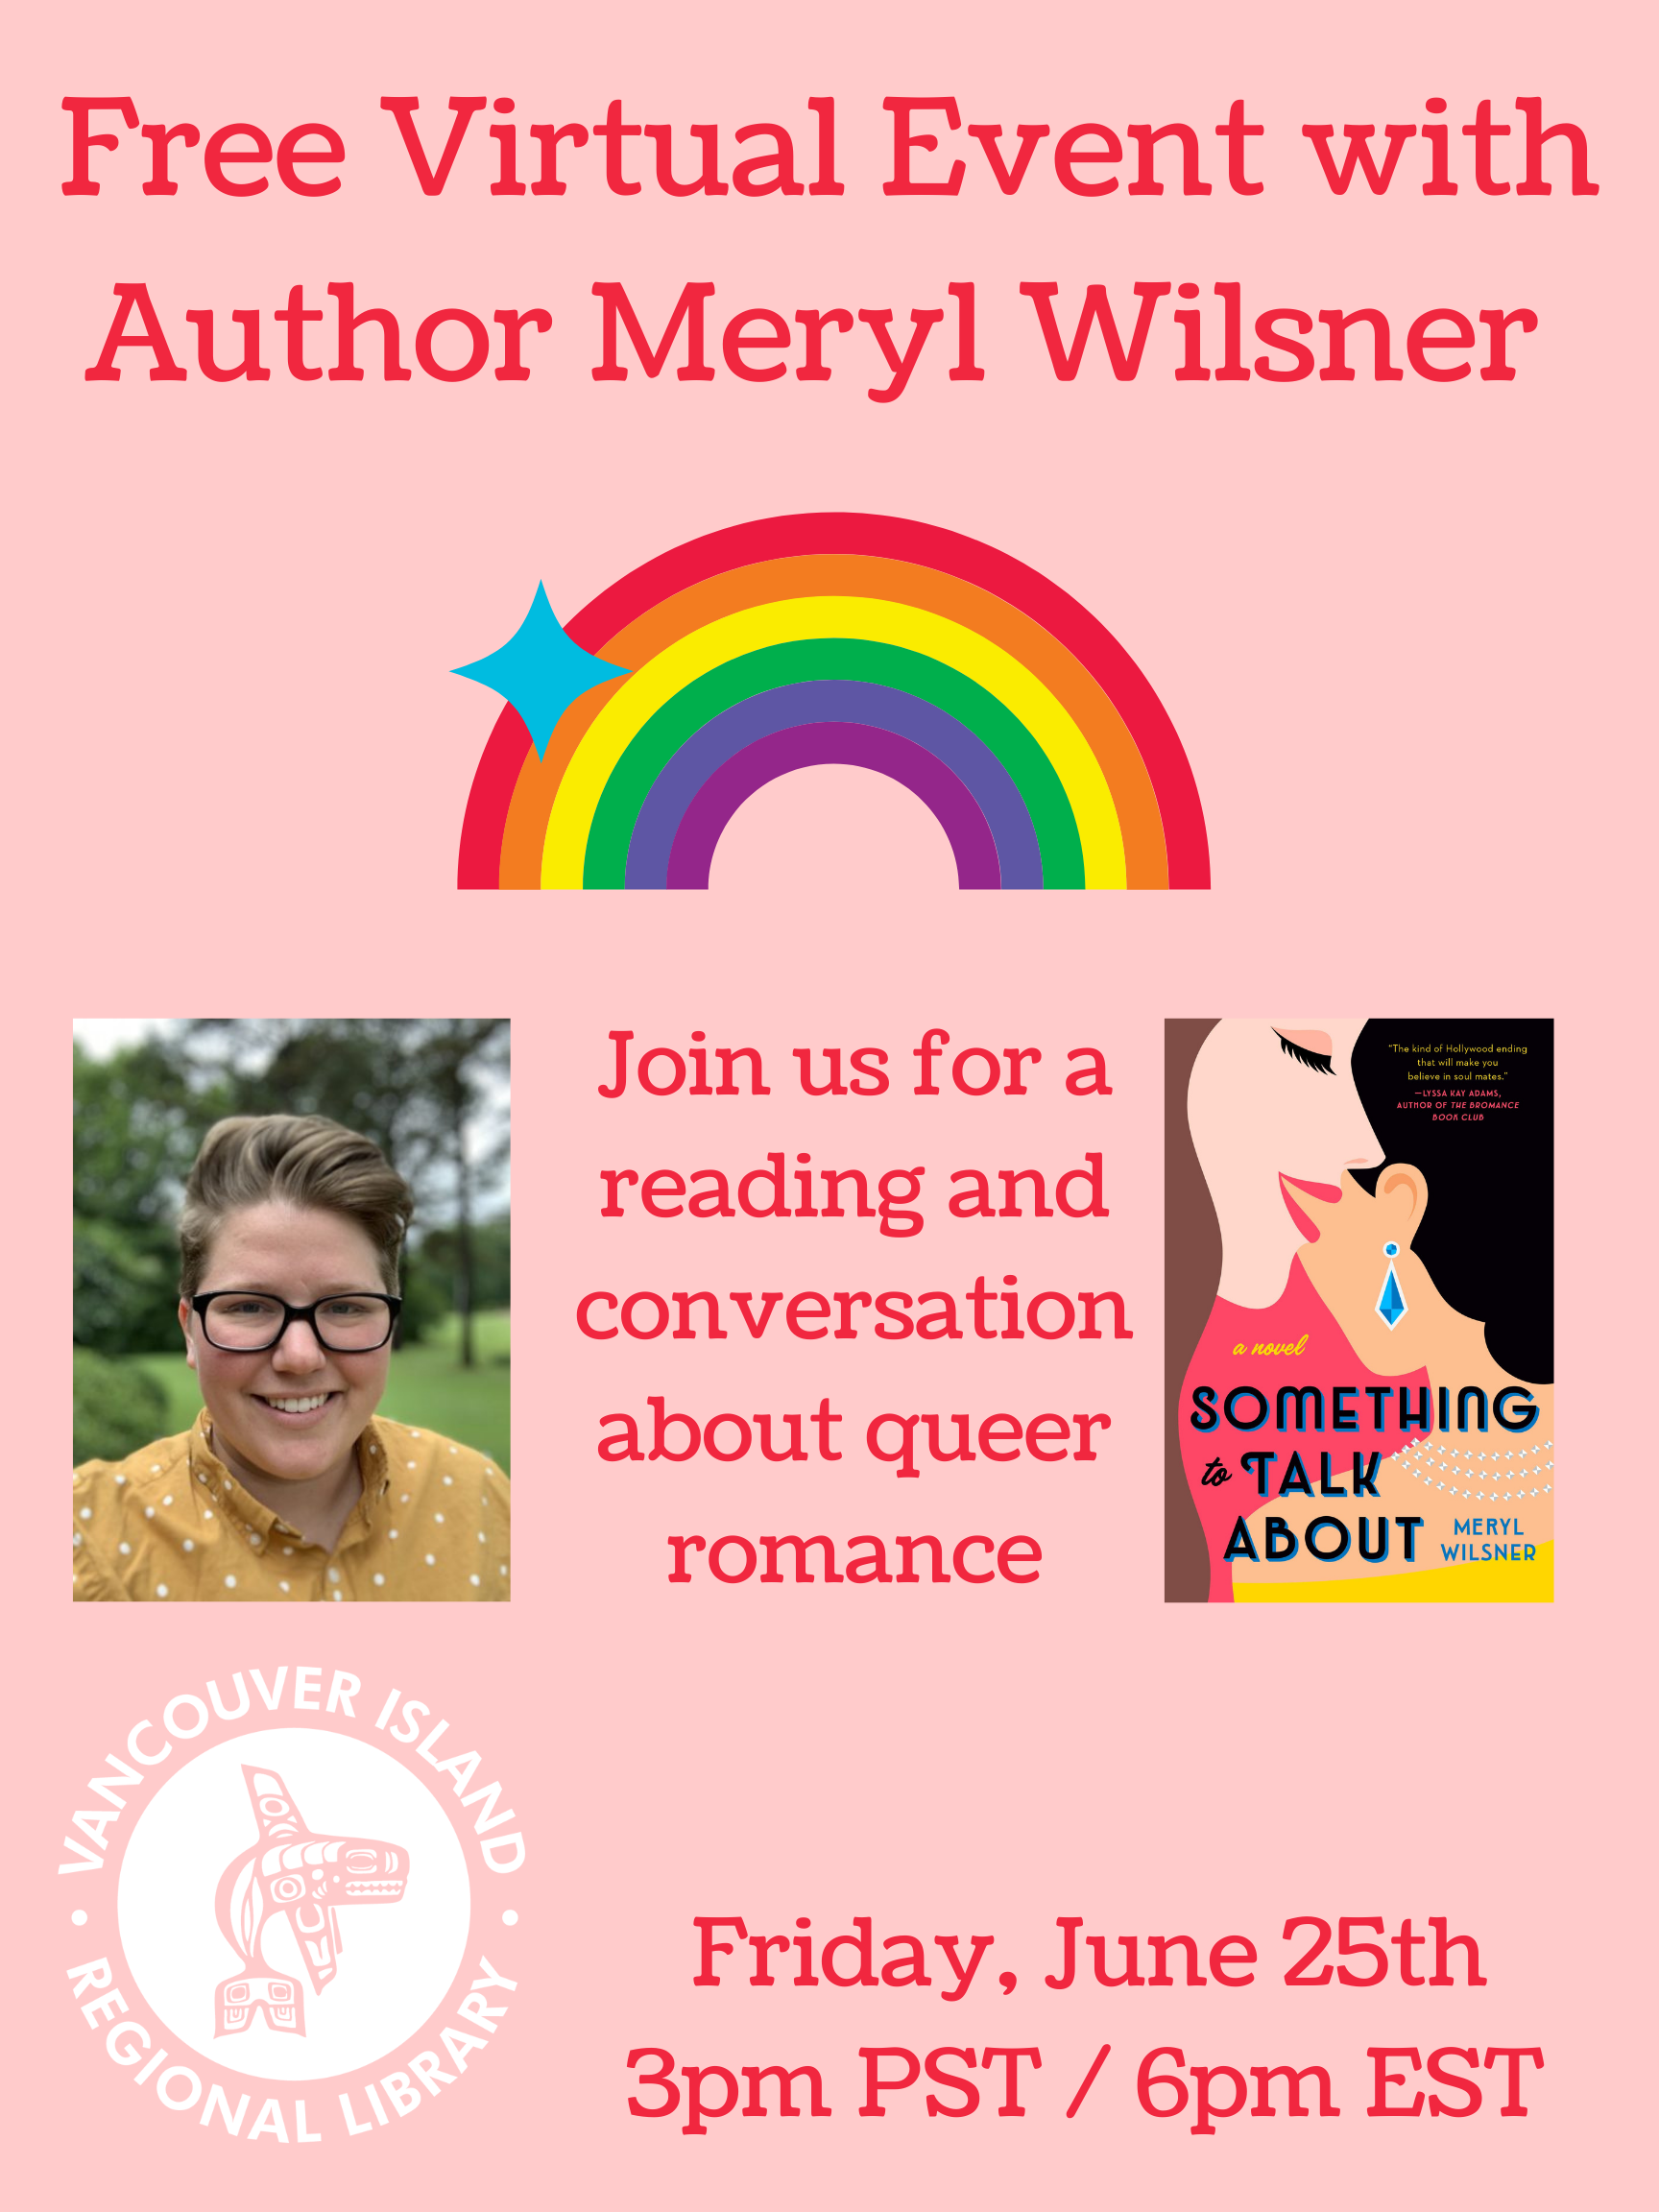 """Poster stating """"Free Virtual Event with Author Meryl Wilsner. Join us for a reading and conversation about queer romance. Friay, June 25th 3pm PST / 6pm EST. Vancouver Island Regional Library."""" With images of Meryl, book cover of Something to Talk About, and a rainbow"""